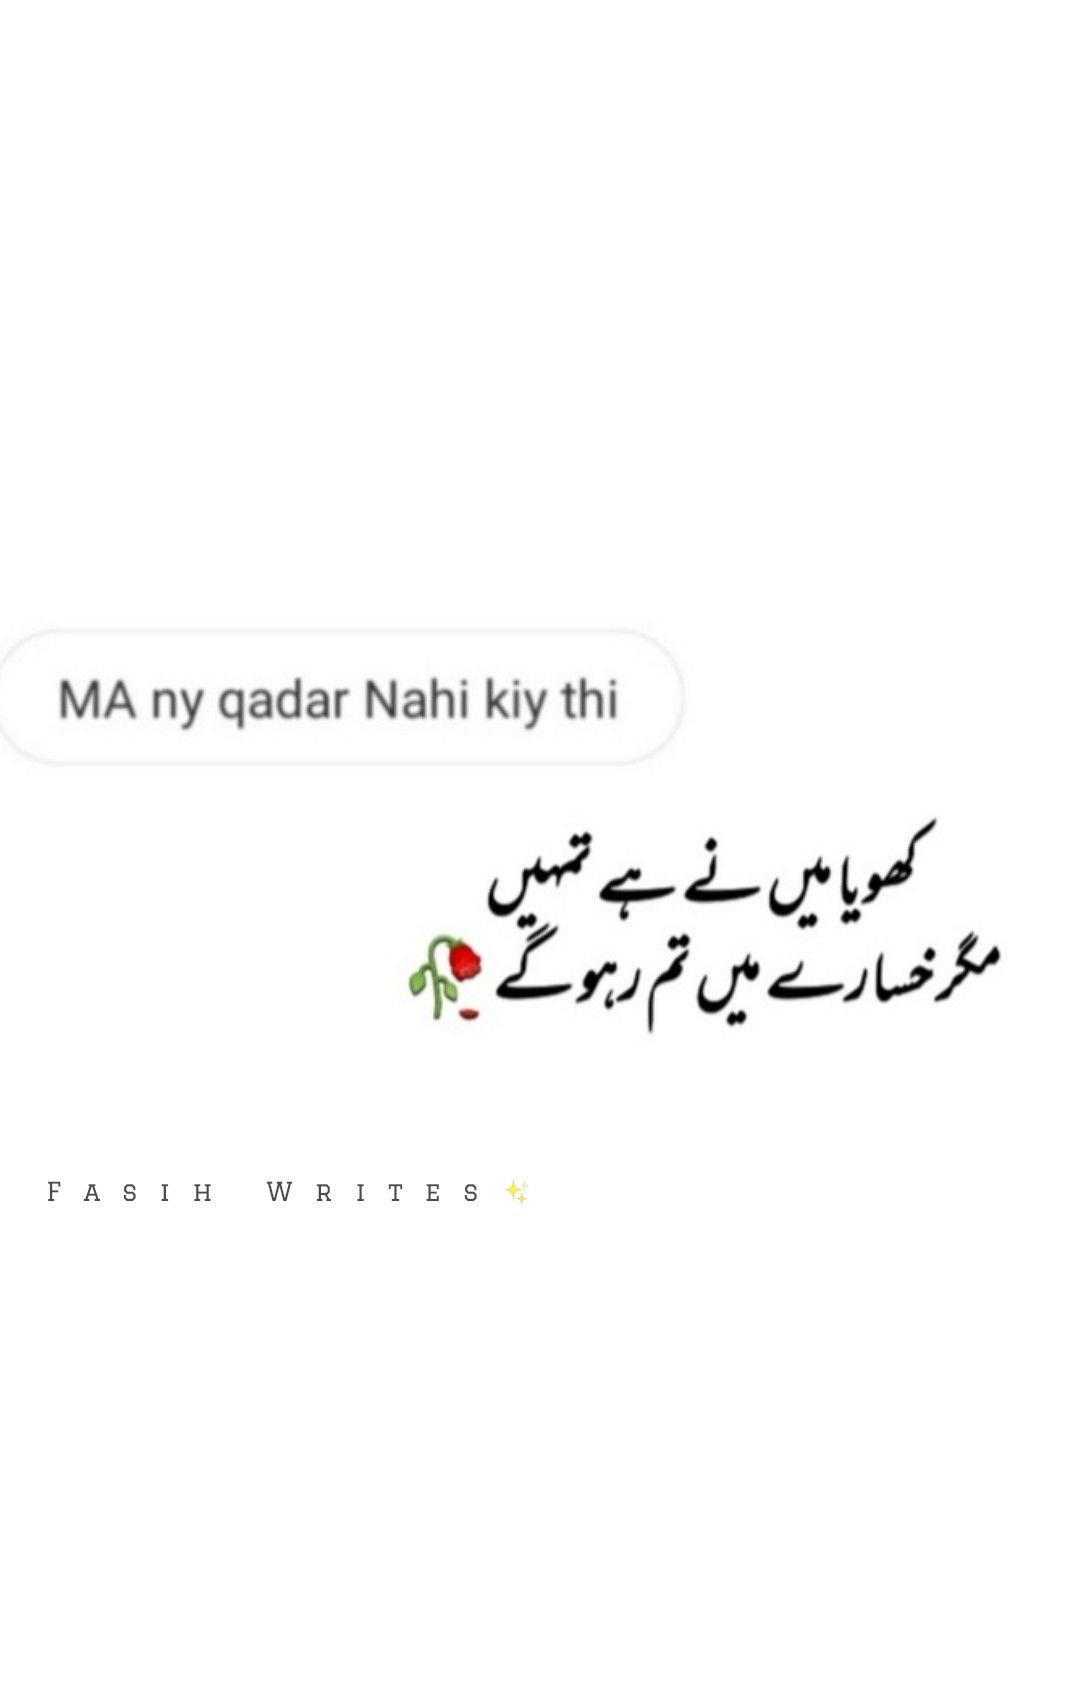 Taunting Quotes Urdu Funny Quotes Reality Quotes